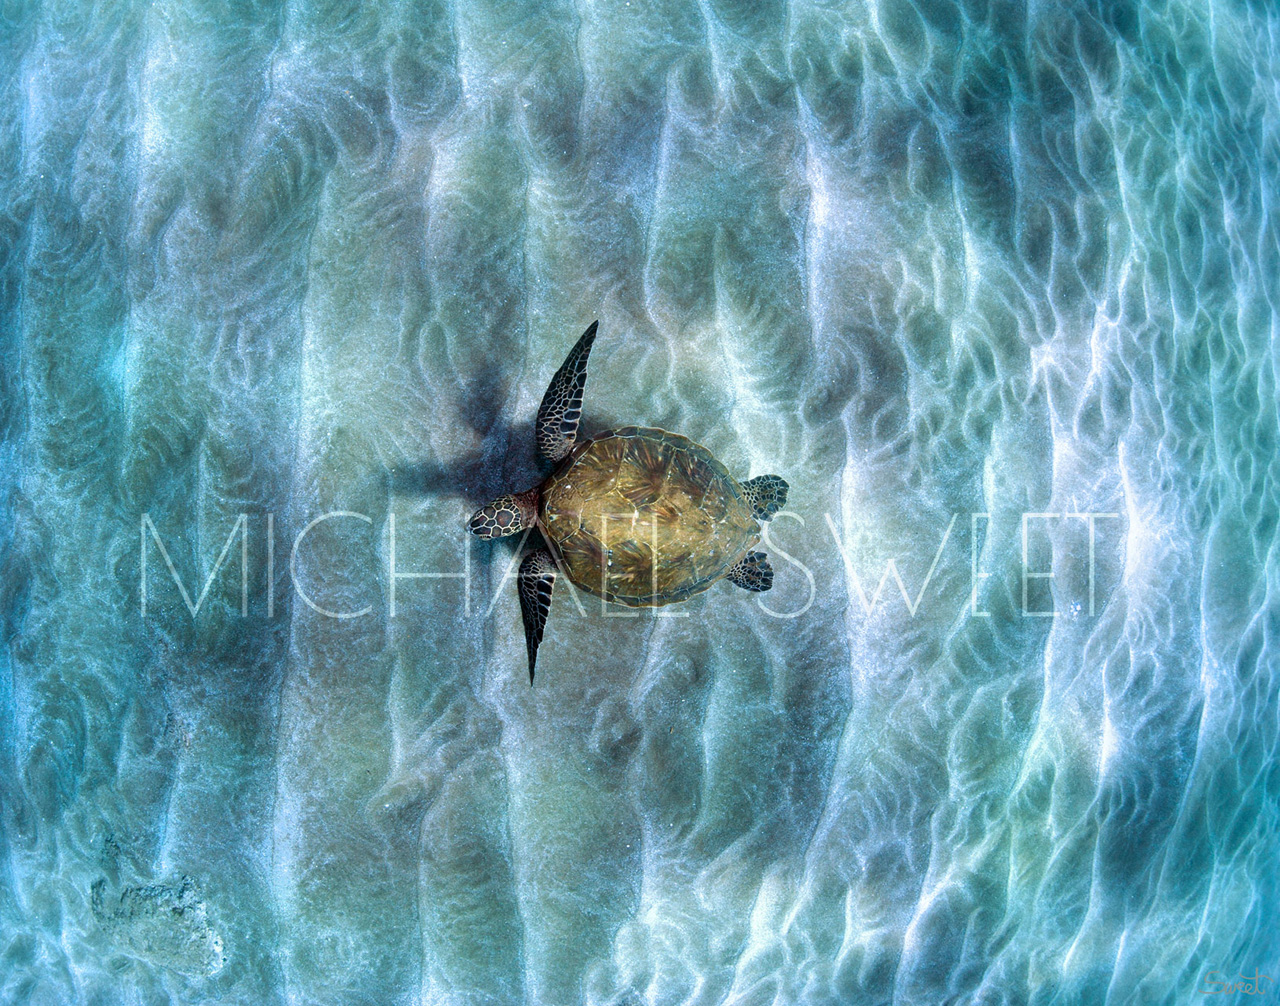 Photograph of Hawaiian sea turtle seen from above